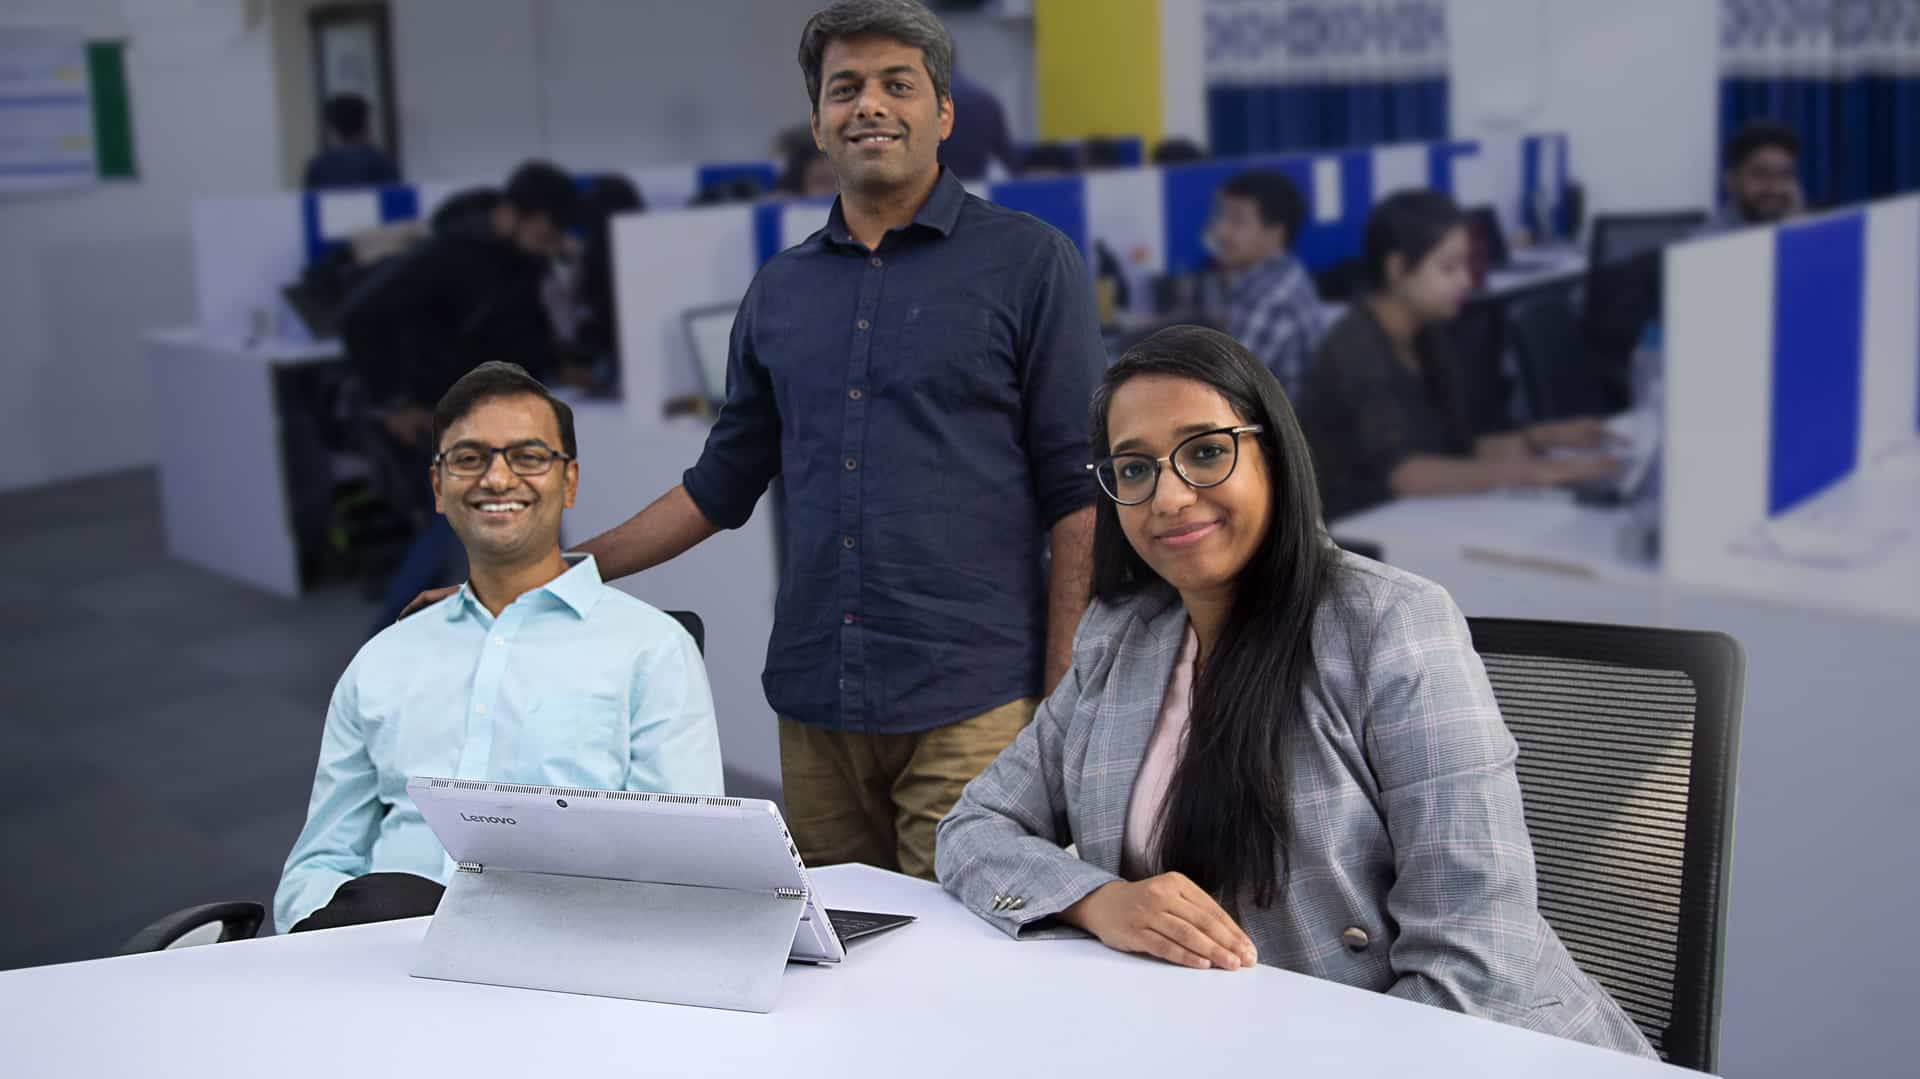 This edtech platform is helping college students make right career choices